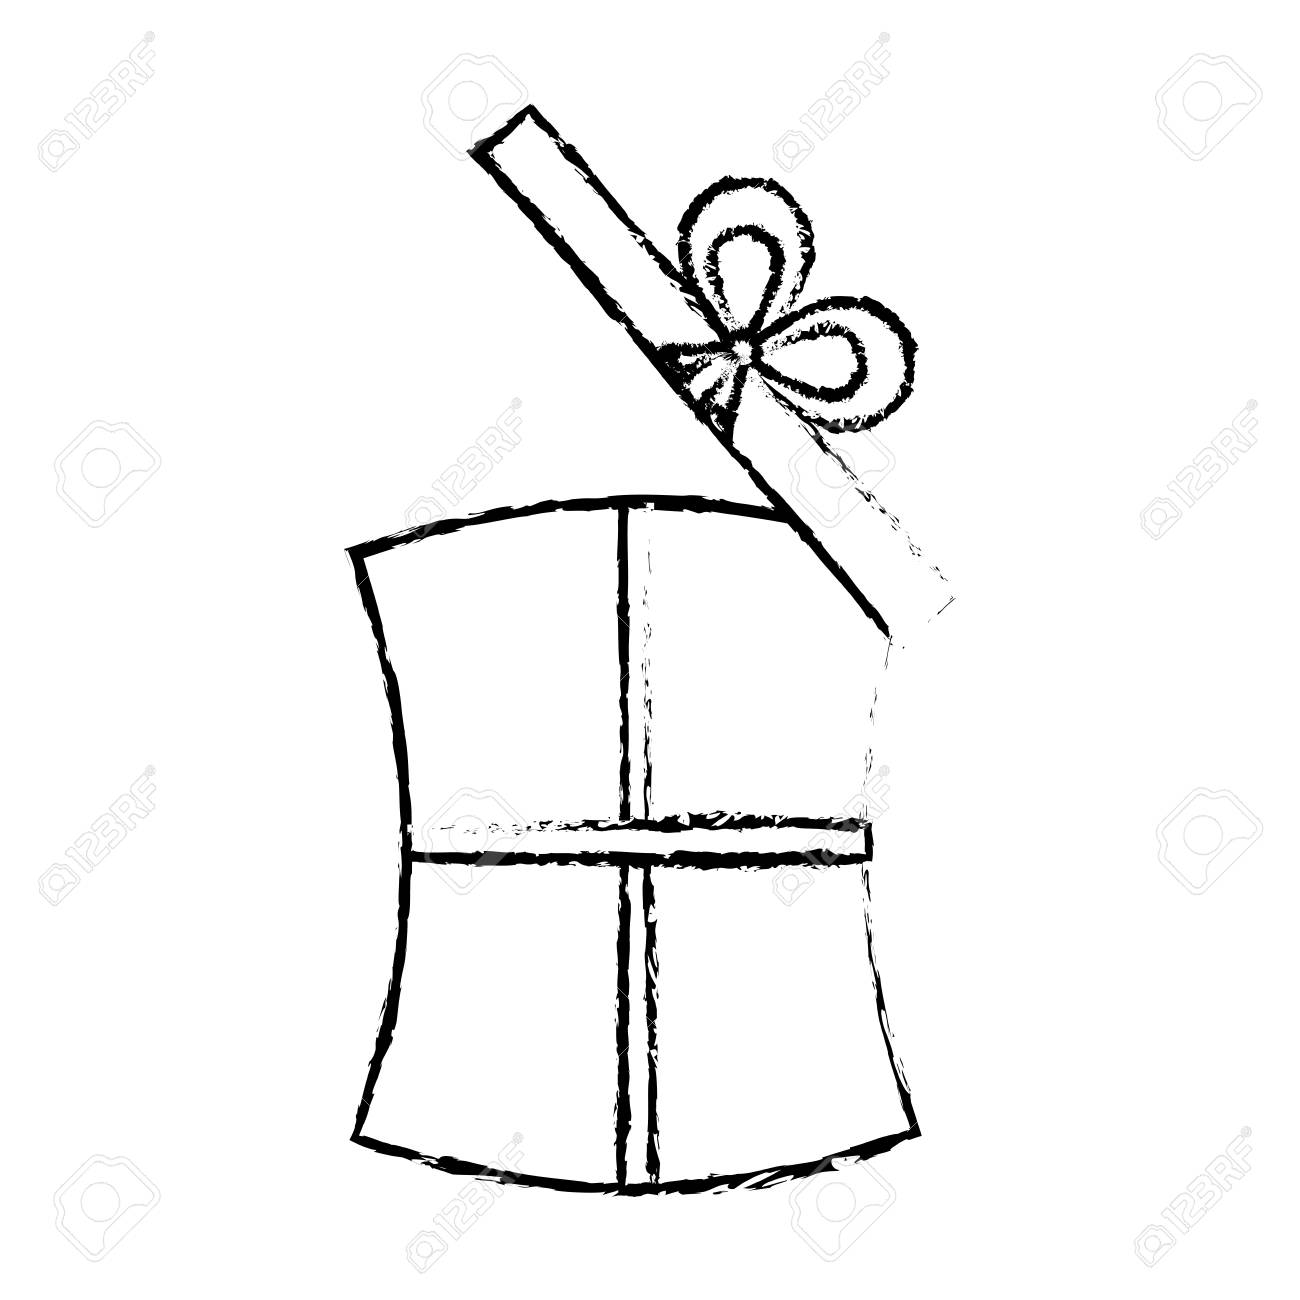 Open Gift Box Ribbon Wedding Present Sketch Vector Illustration Eps 10 Stock